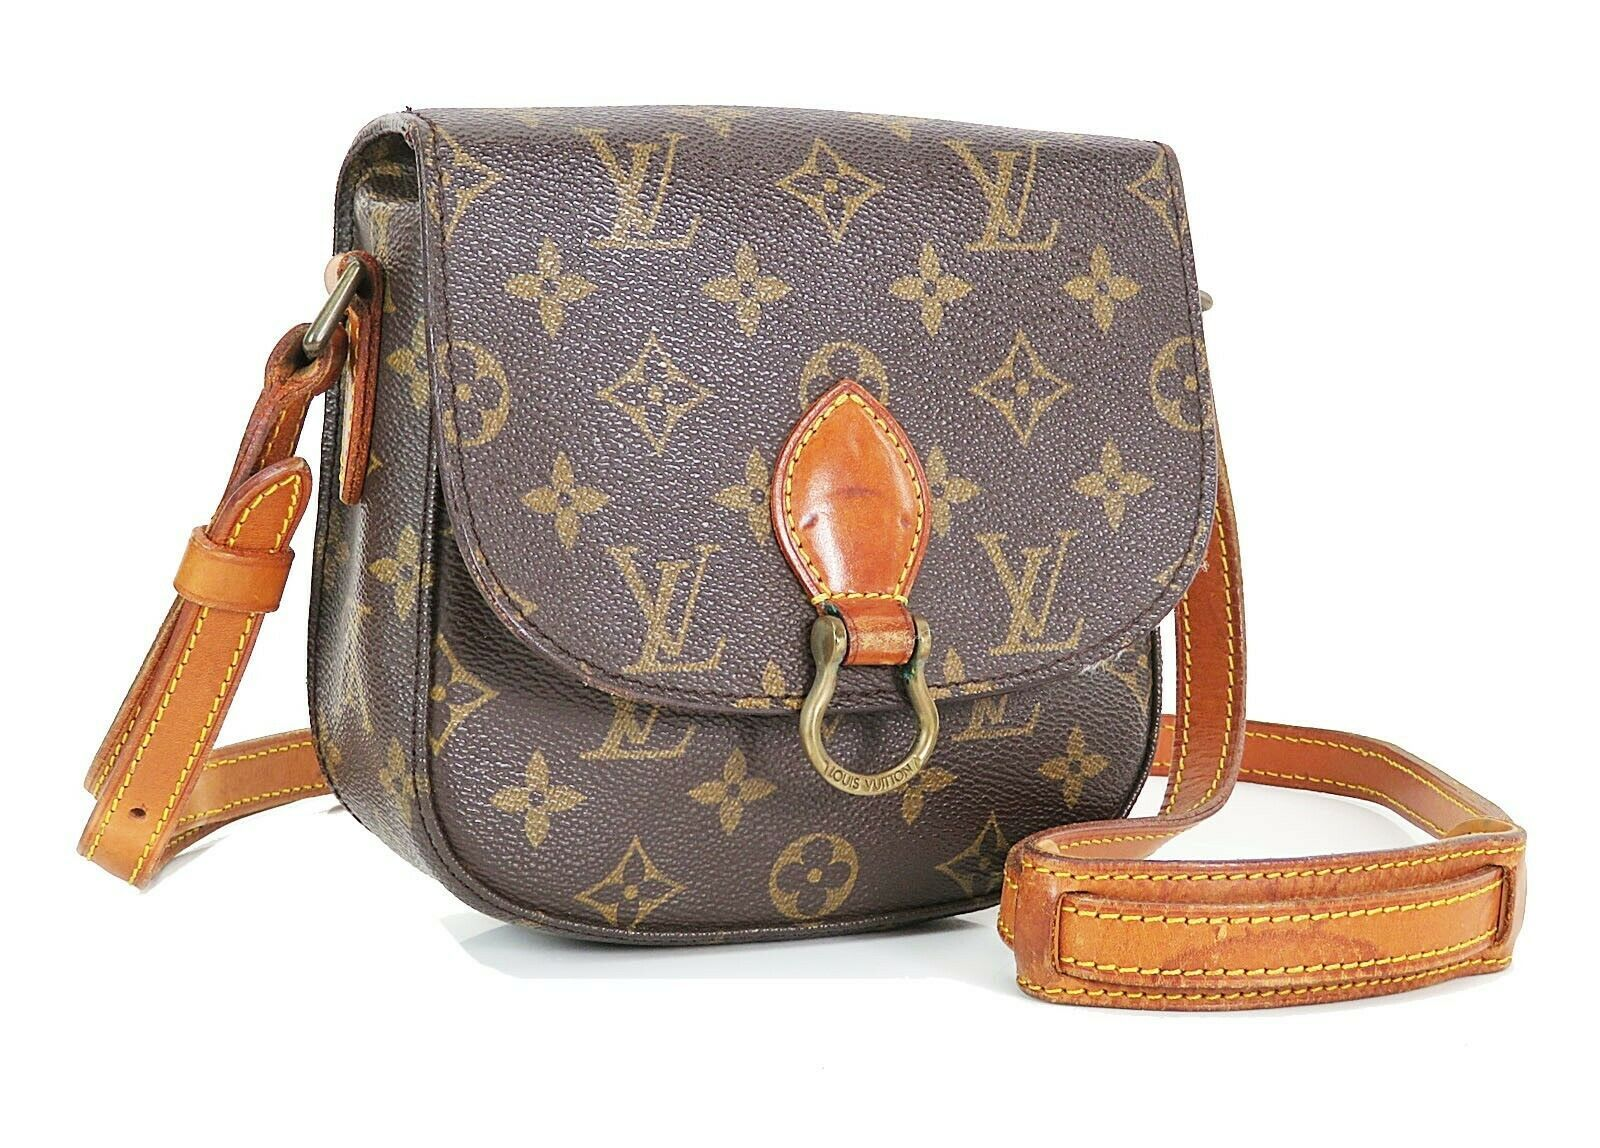 Authentic LOUIS VUITTON Saint Cloud PM Monogram Shoulder Bag #35015 image 2